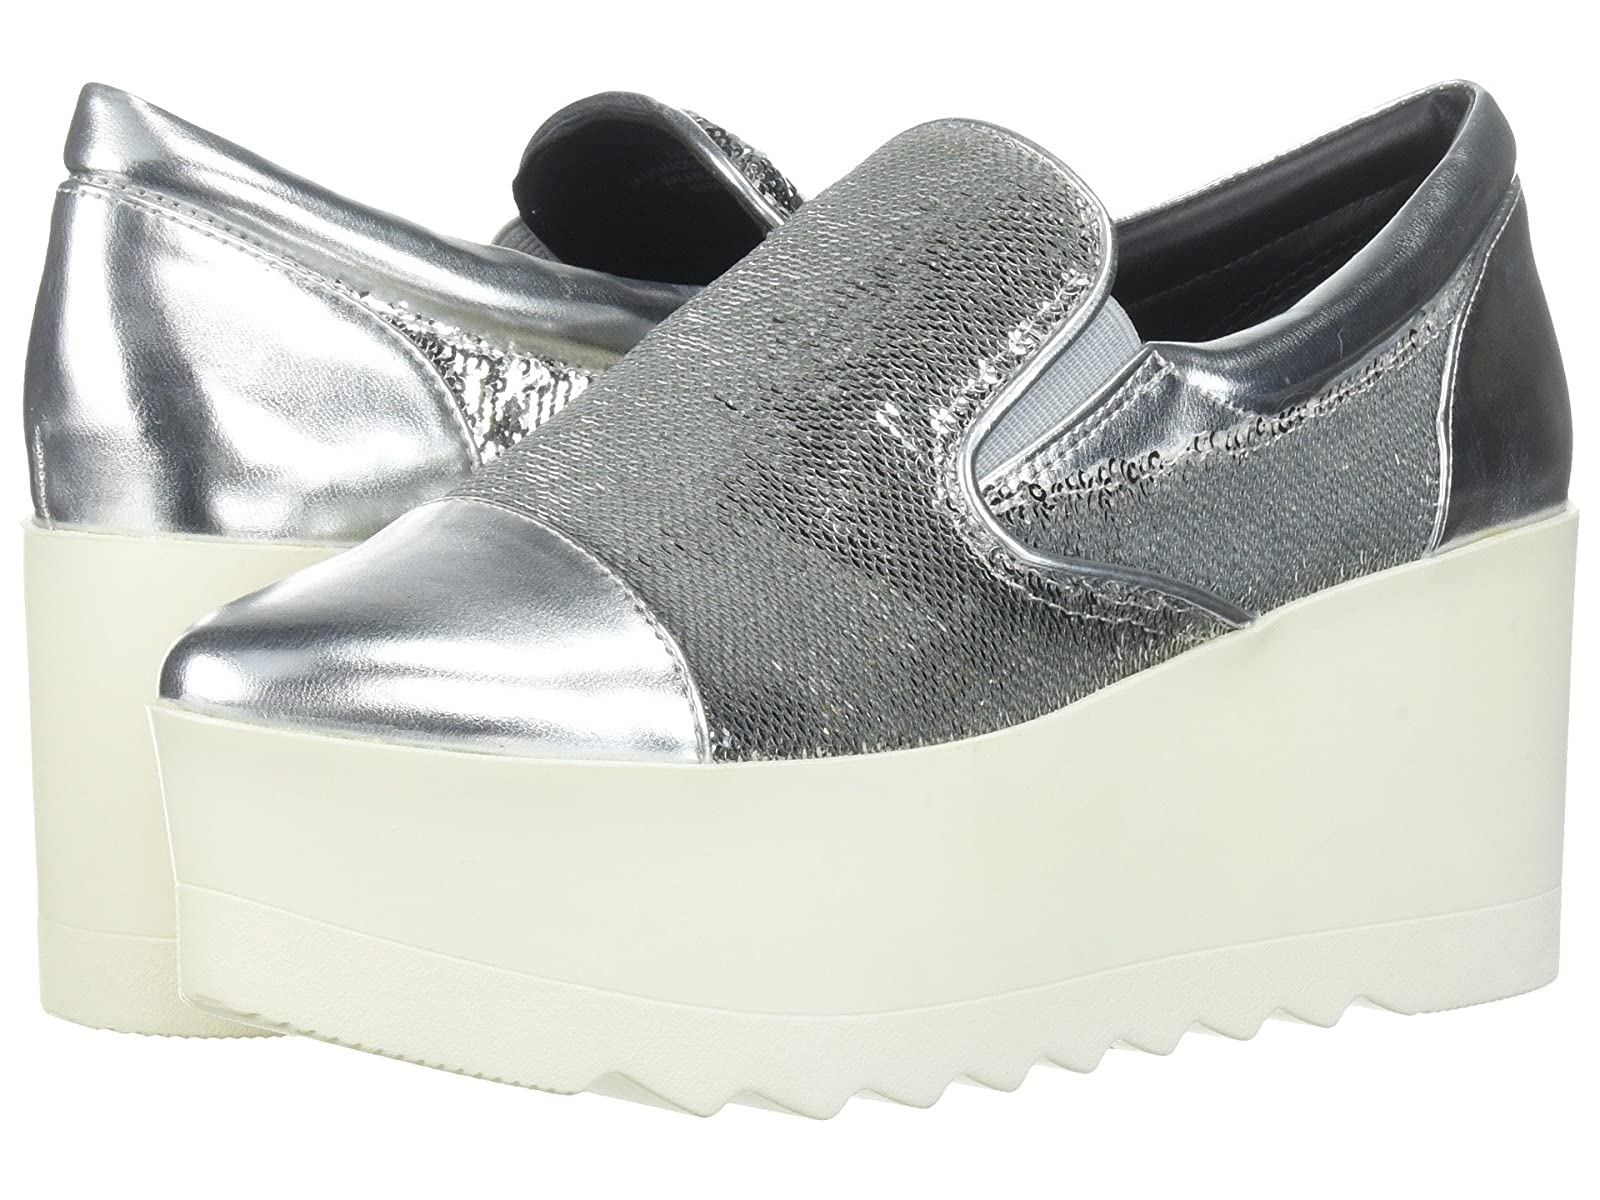 KENDALL + KYLIE Tanya 6Atmospheric grades have affordable shoes